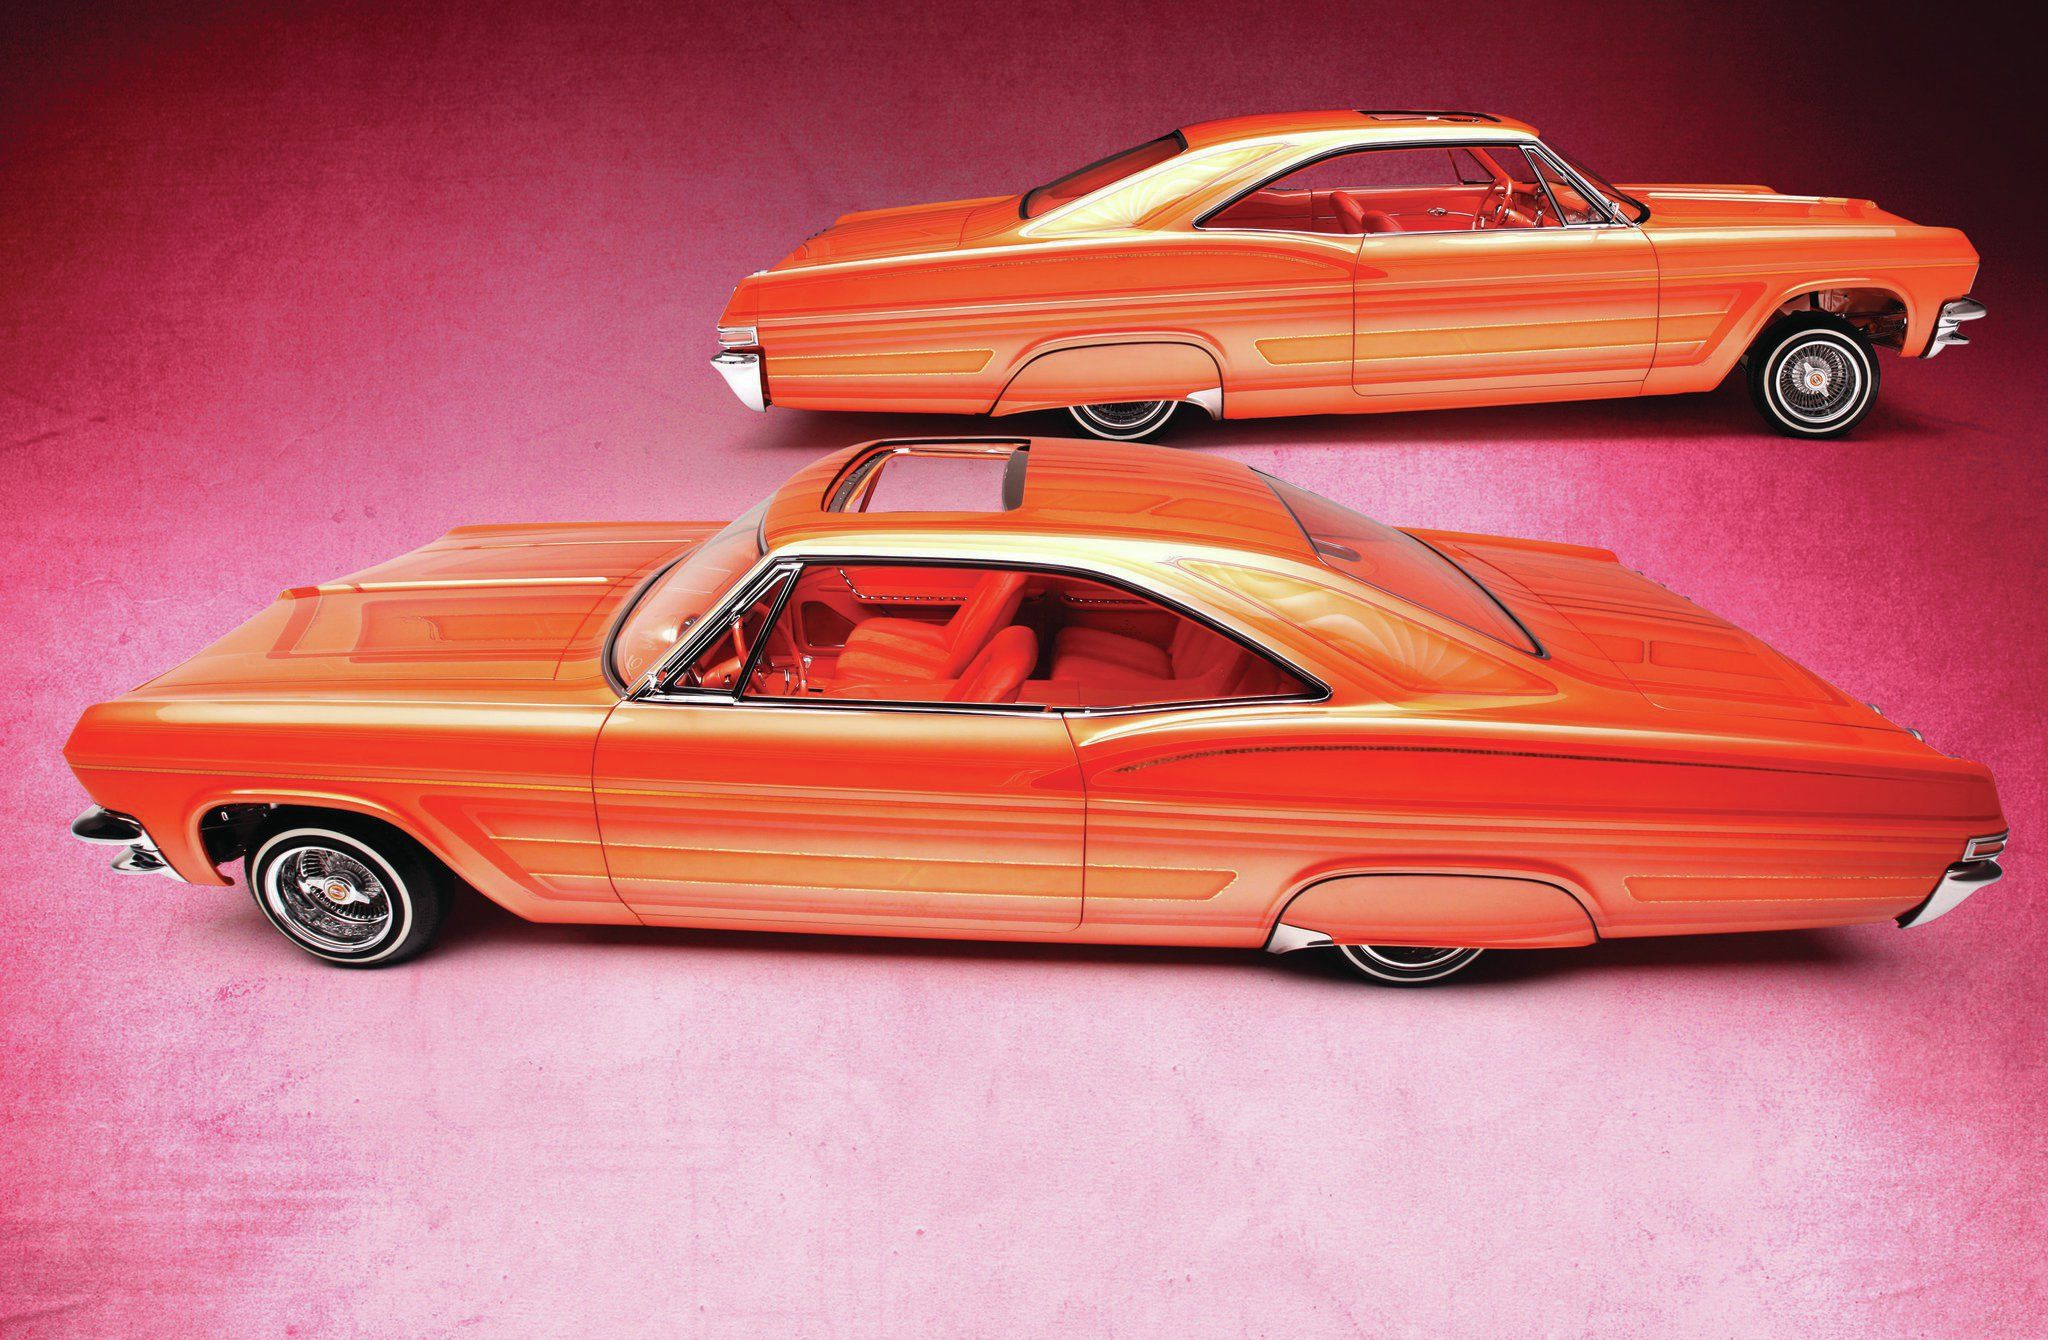 Jesse saldana s 1965 chevrolet impala ss has already been featured twice in the pages of lowrider